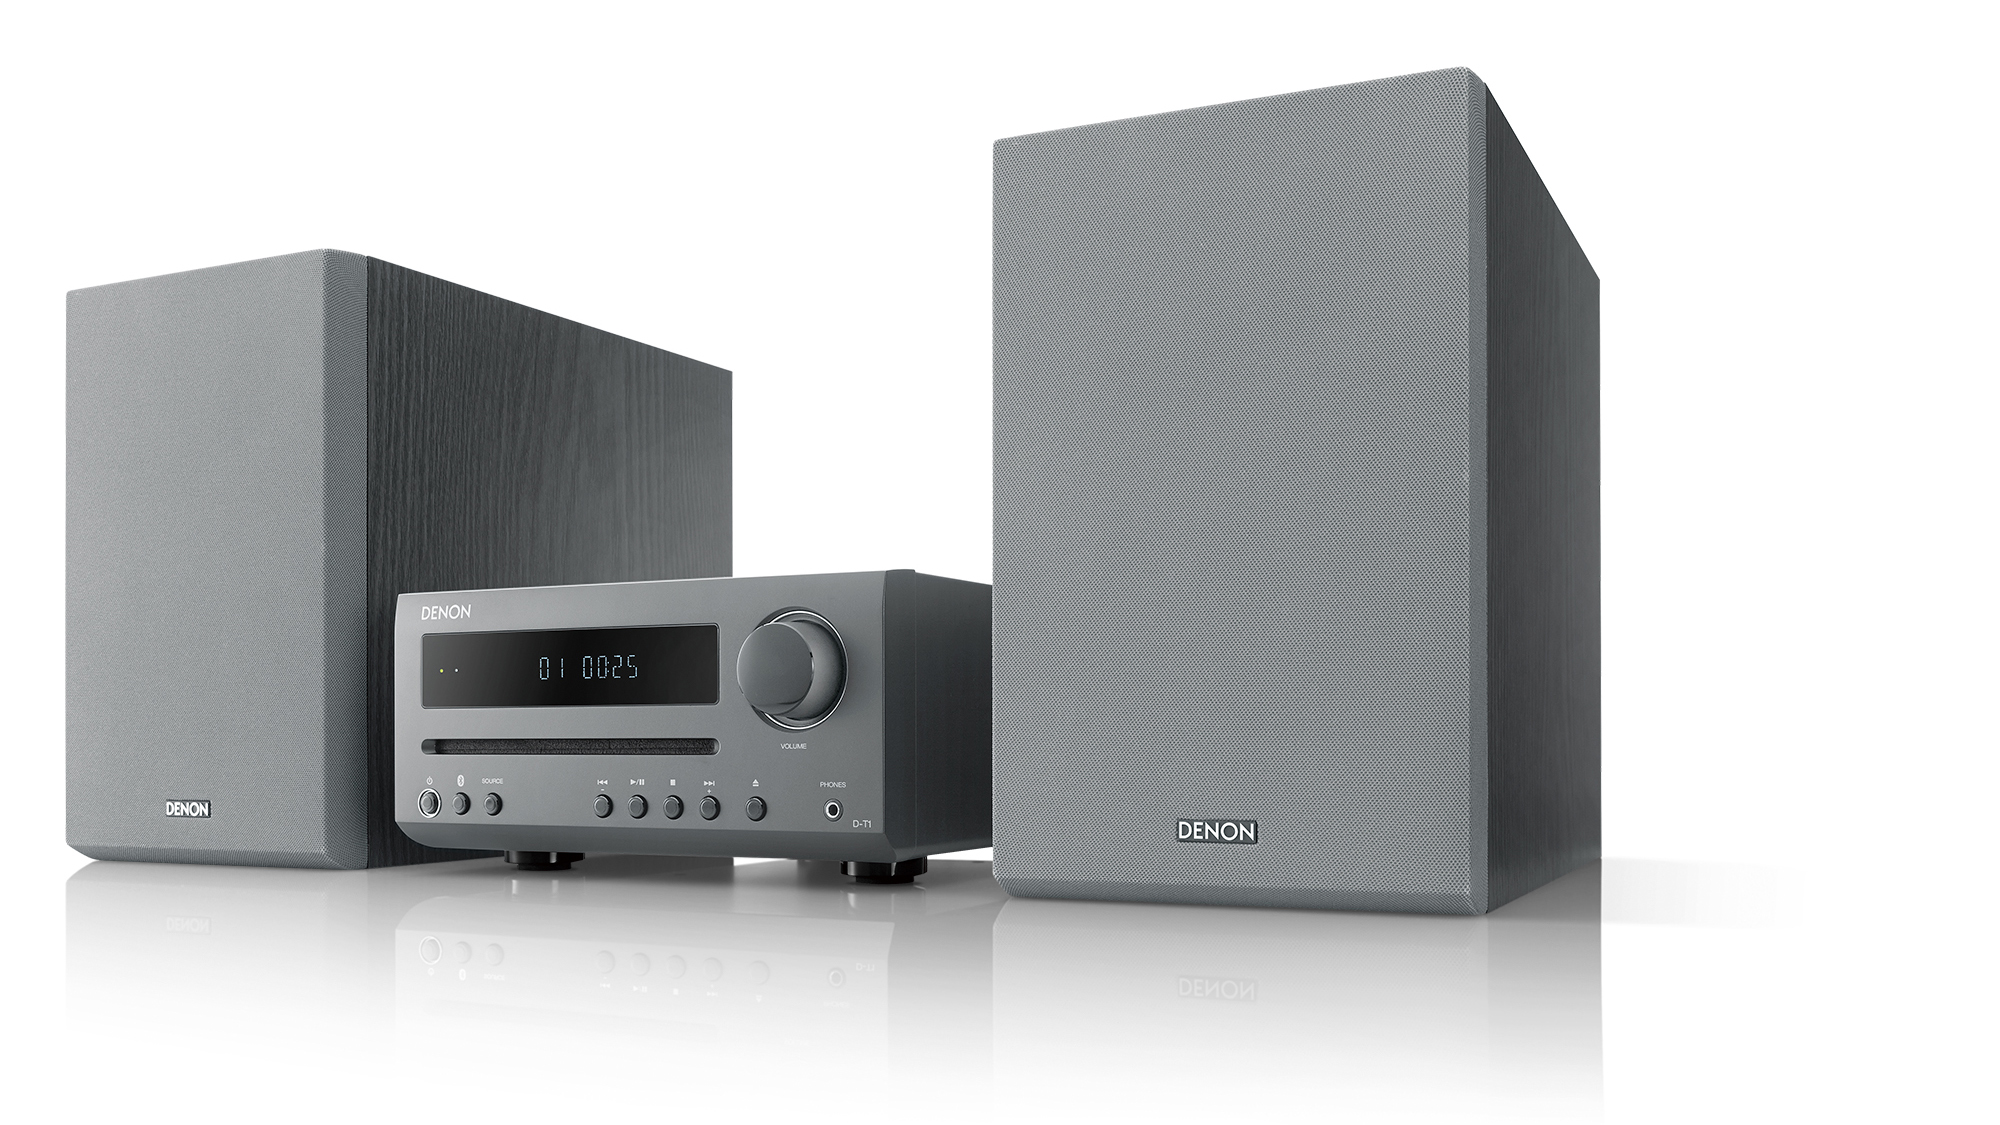 Denon Dt 1 Microsystem Available Now For 269 What Hi Fi